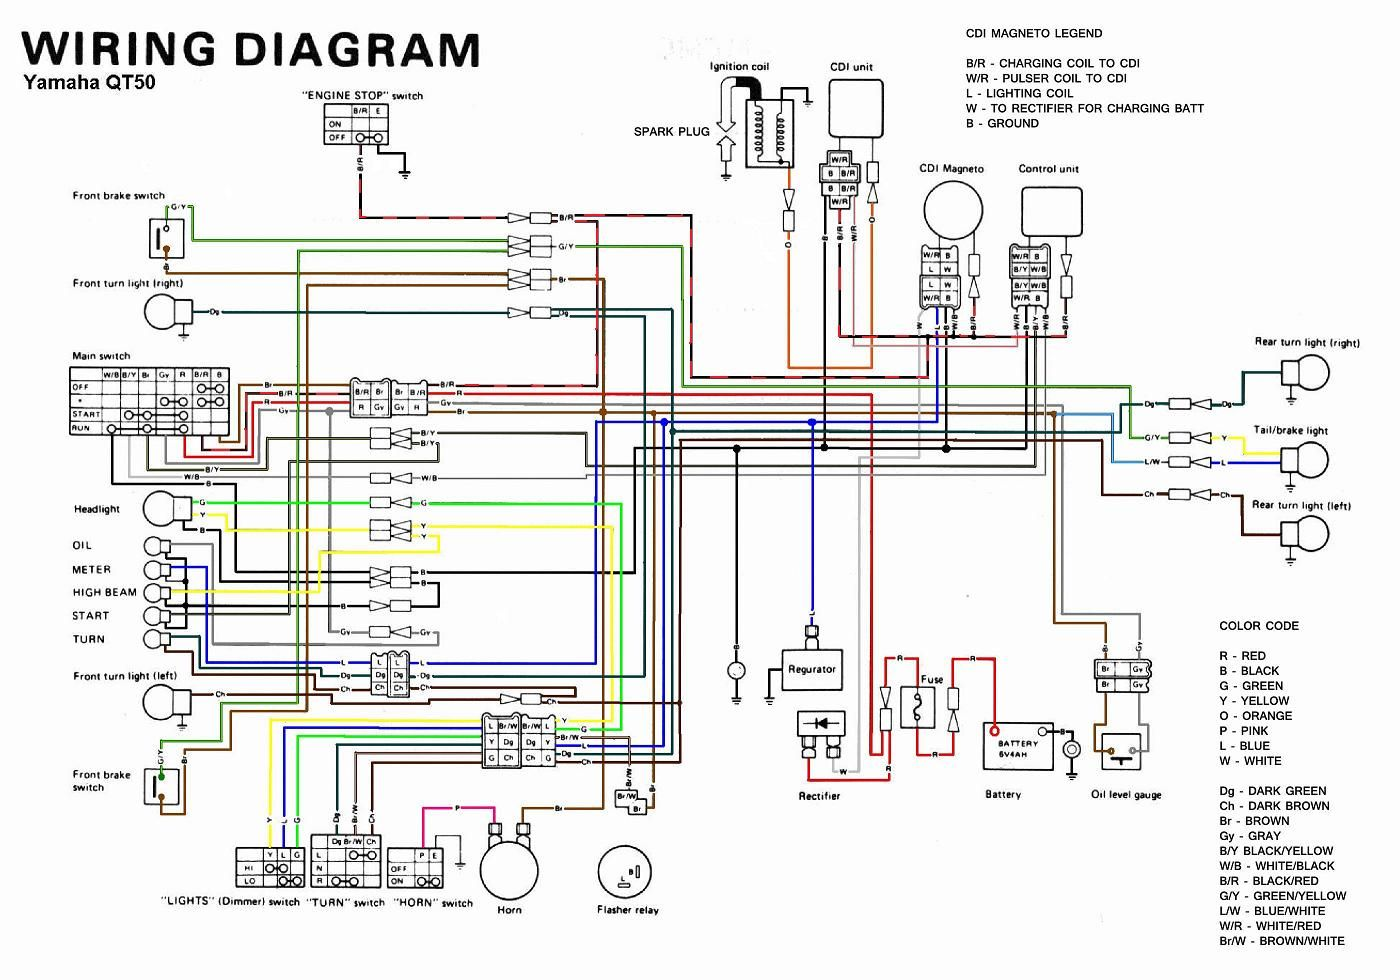 yamaha v 80 wiring diagram schematic diagram databaseyamaha dt 80 wiring diagram wiring diagrams favorites yamaha [ 1400 x 980 Pixel ]